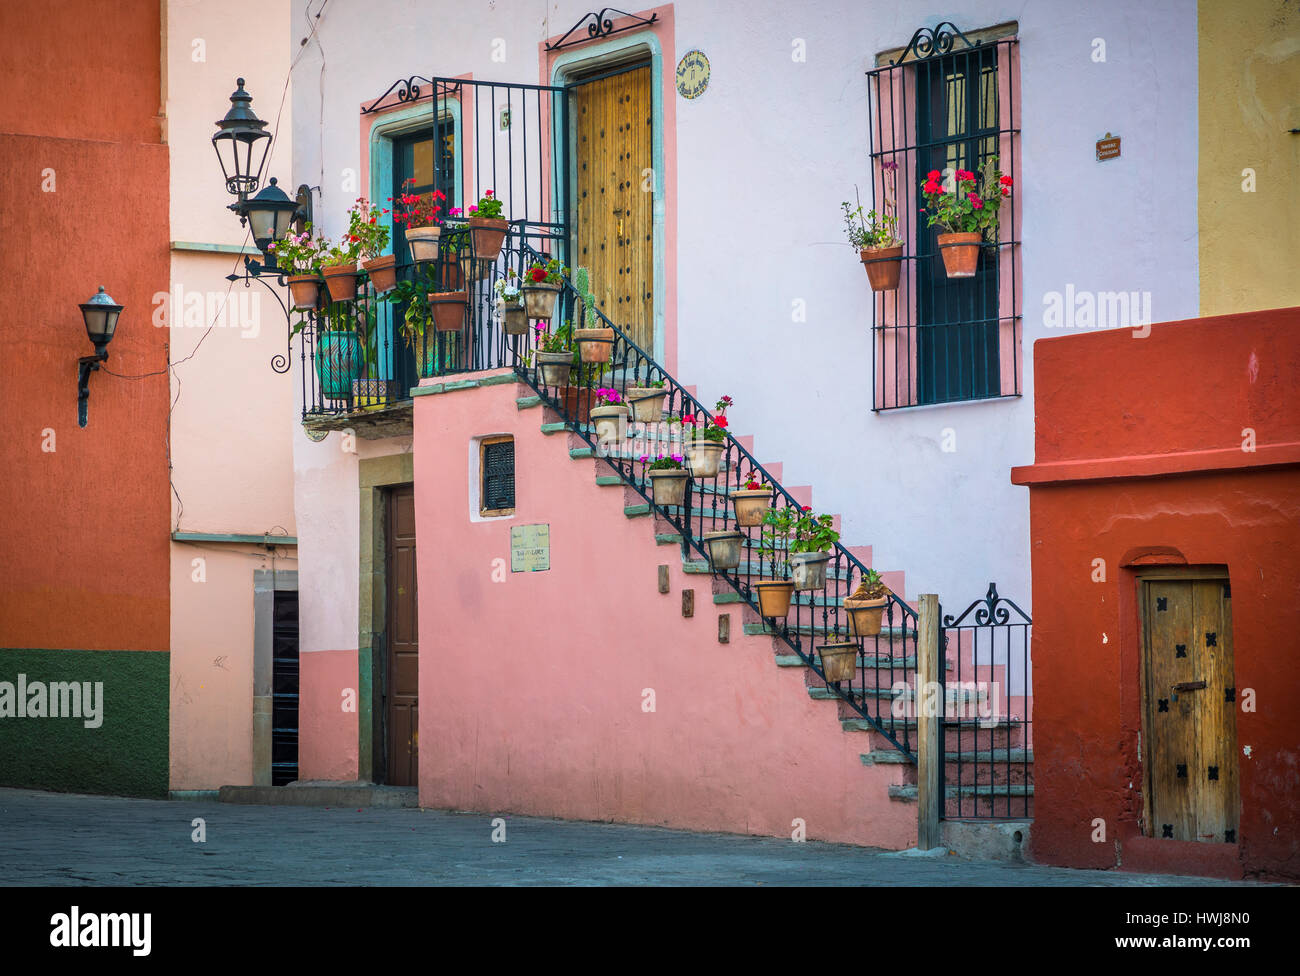 Beautiful staircase at home in Guanajuato, Mexico ------ Guanajuato is a city and municipality in central Mexico - Stock Image